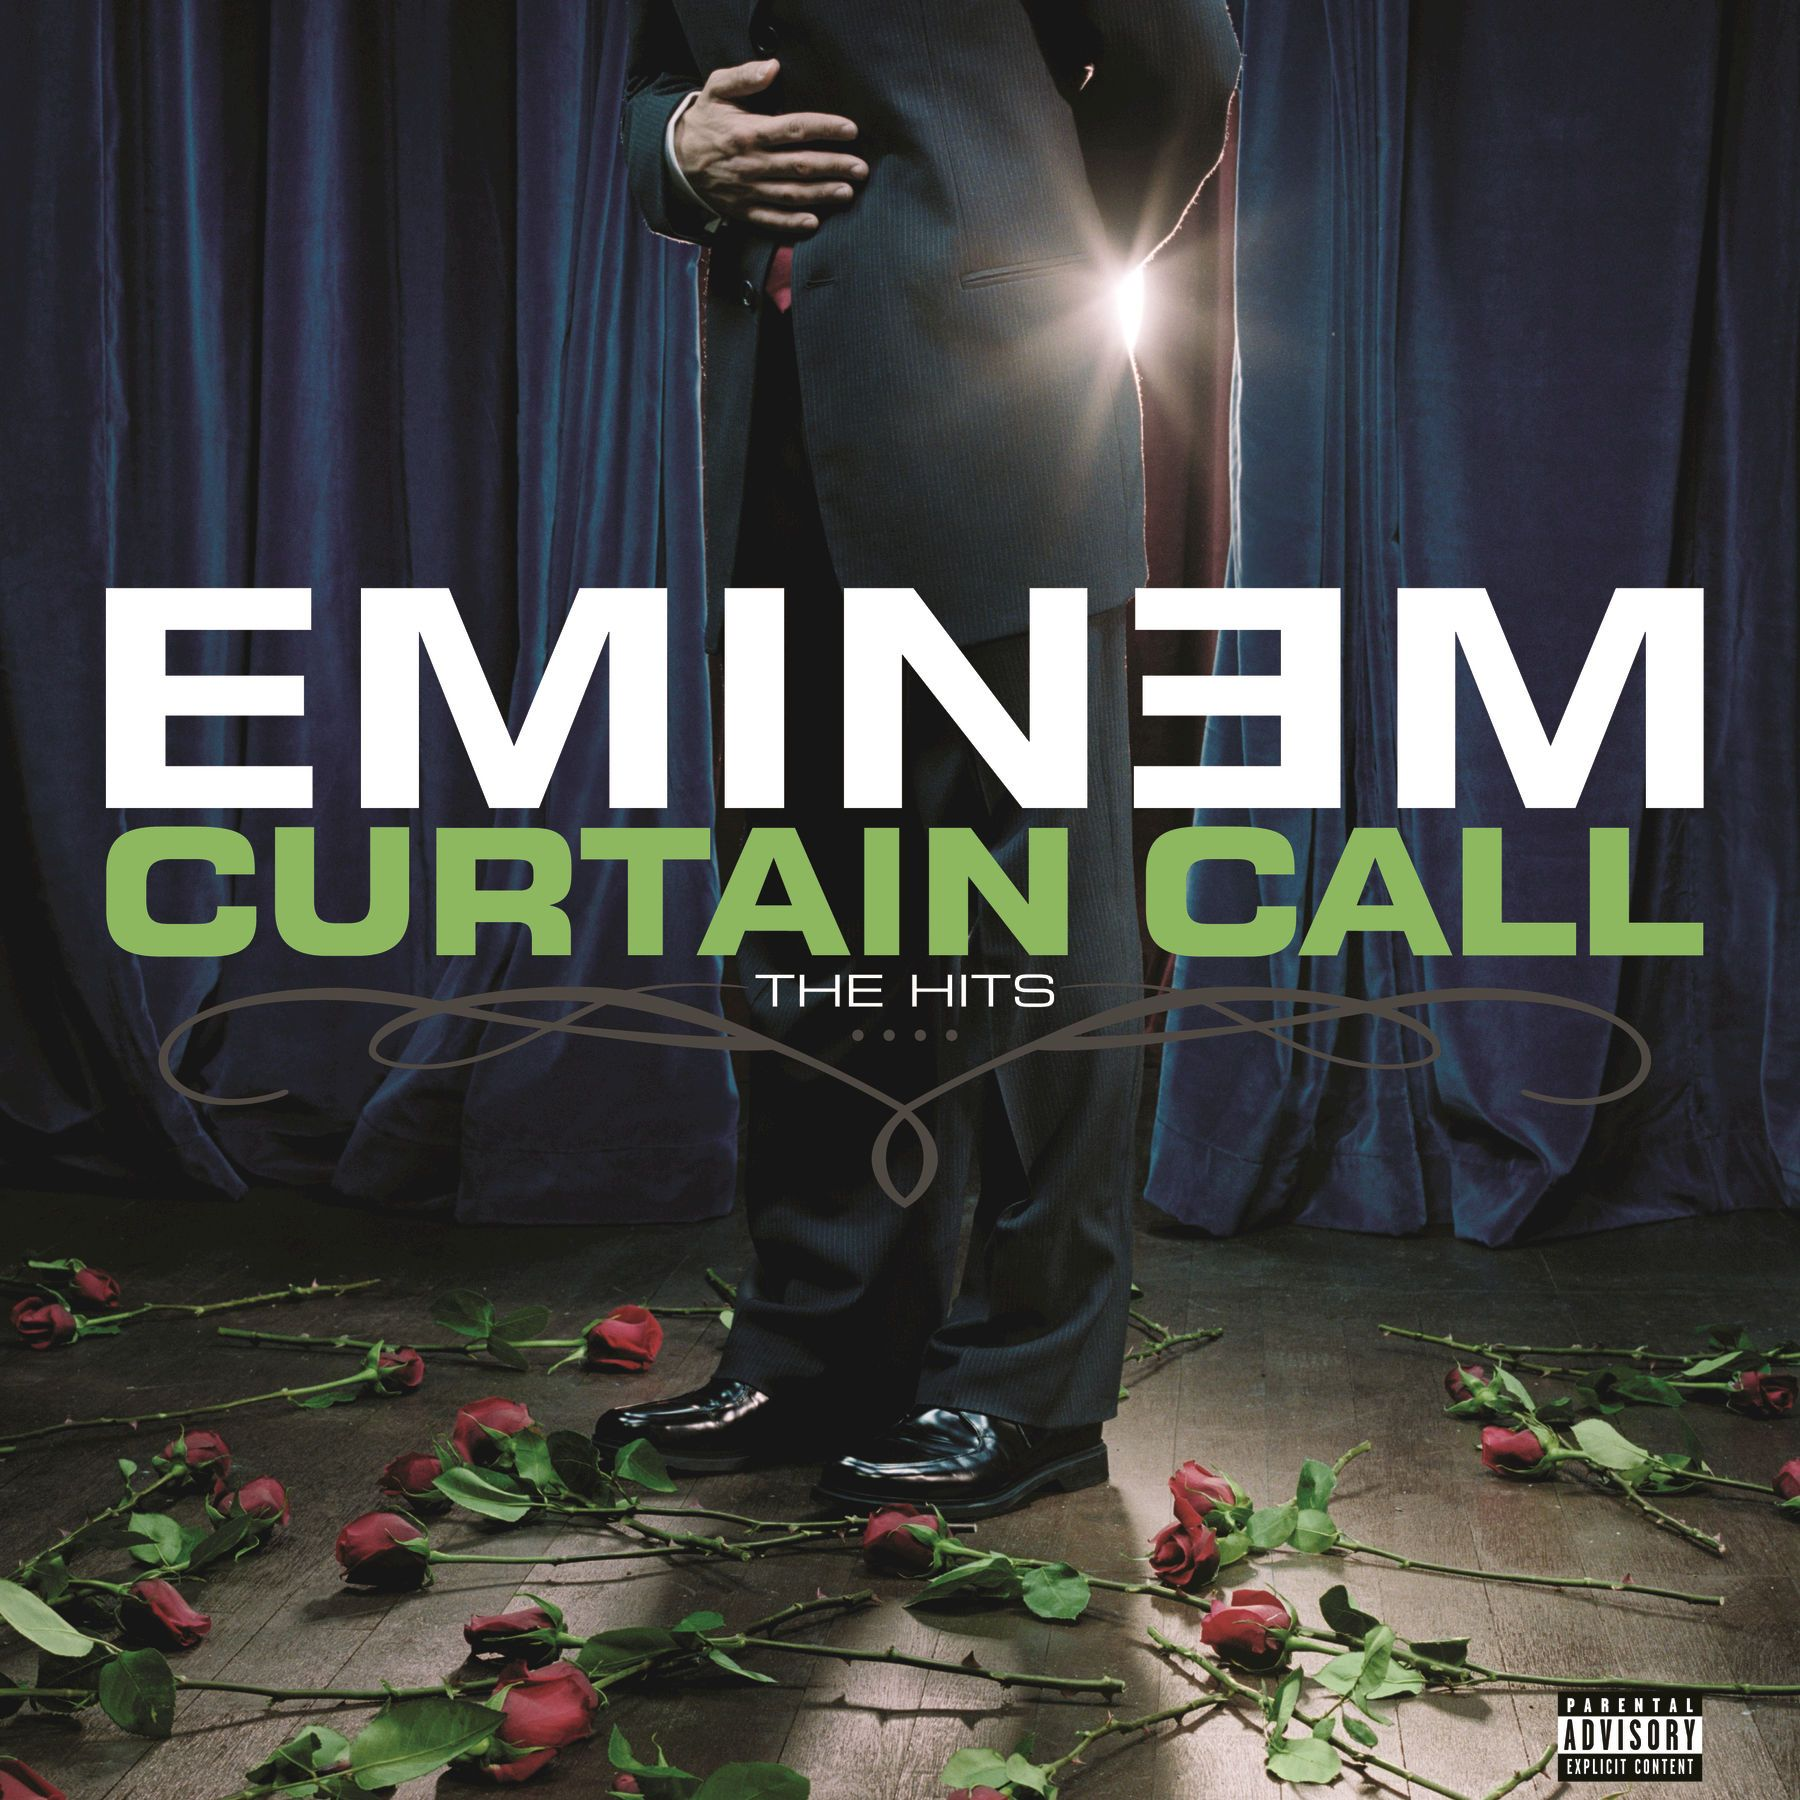 Curtain Call The Hits Deluxe Version By Eminem On Itunes Eminem Eminem Poster Curtain Call